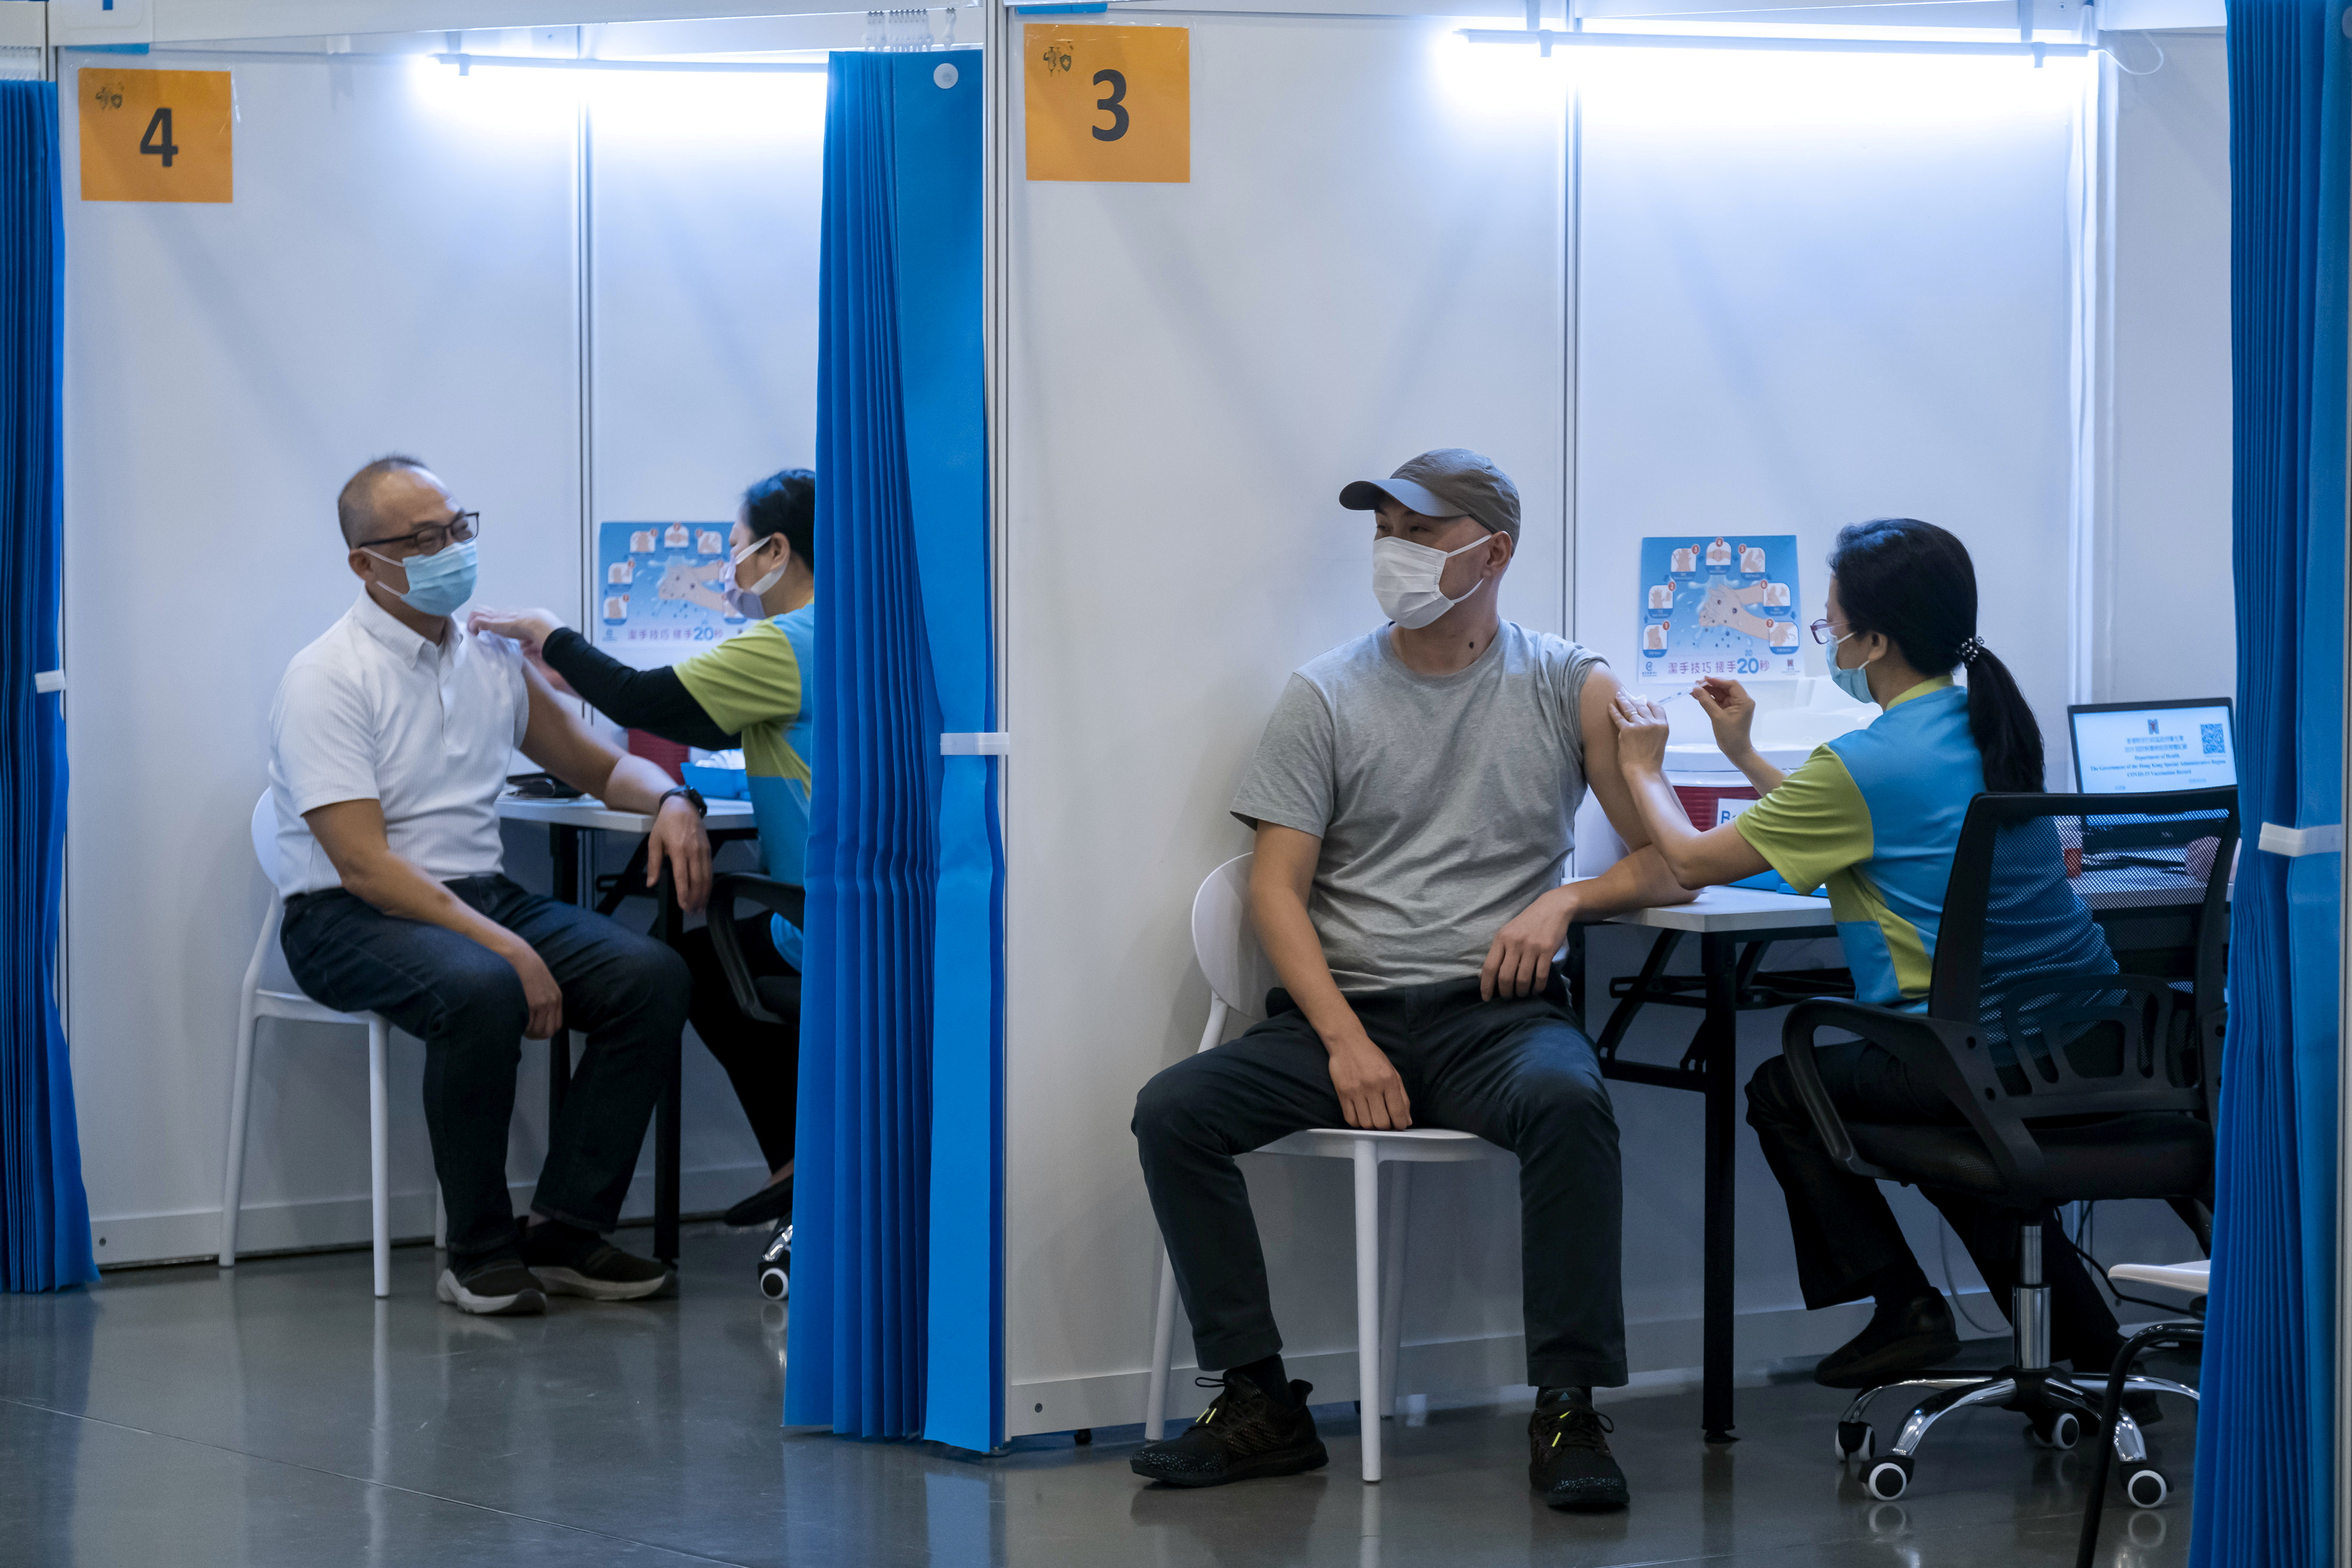 People receive a dose of the Sinovac Biotech's COVID-19 vaccine at a community vaccination center in Hong Kong, China, February 23, 2021. Paul Yeung/Pool via REUTERS